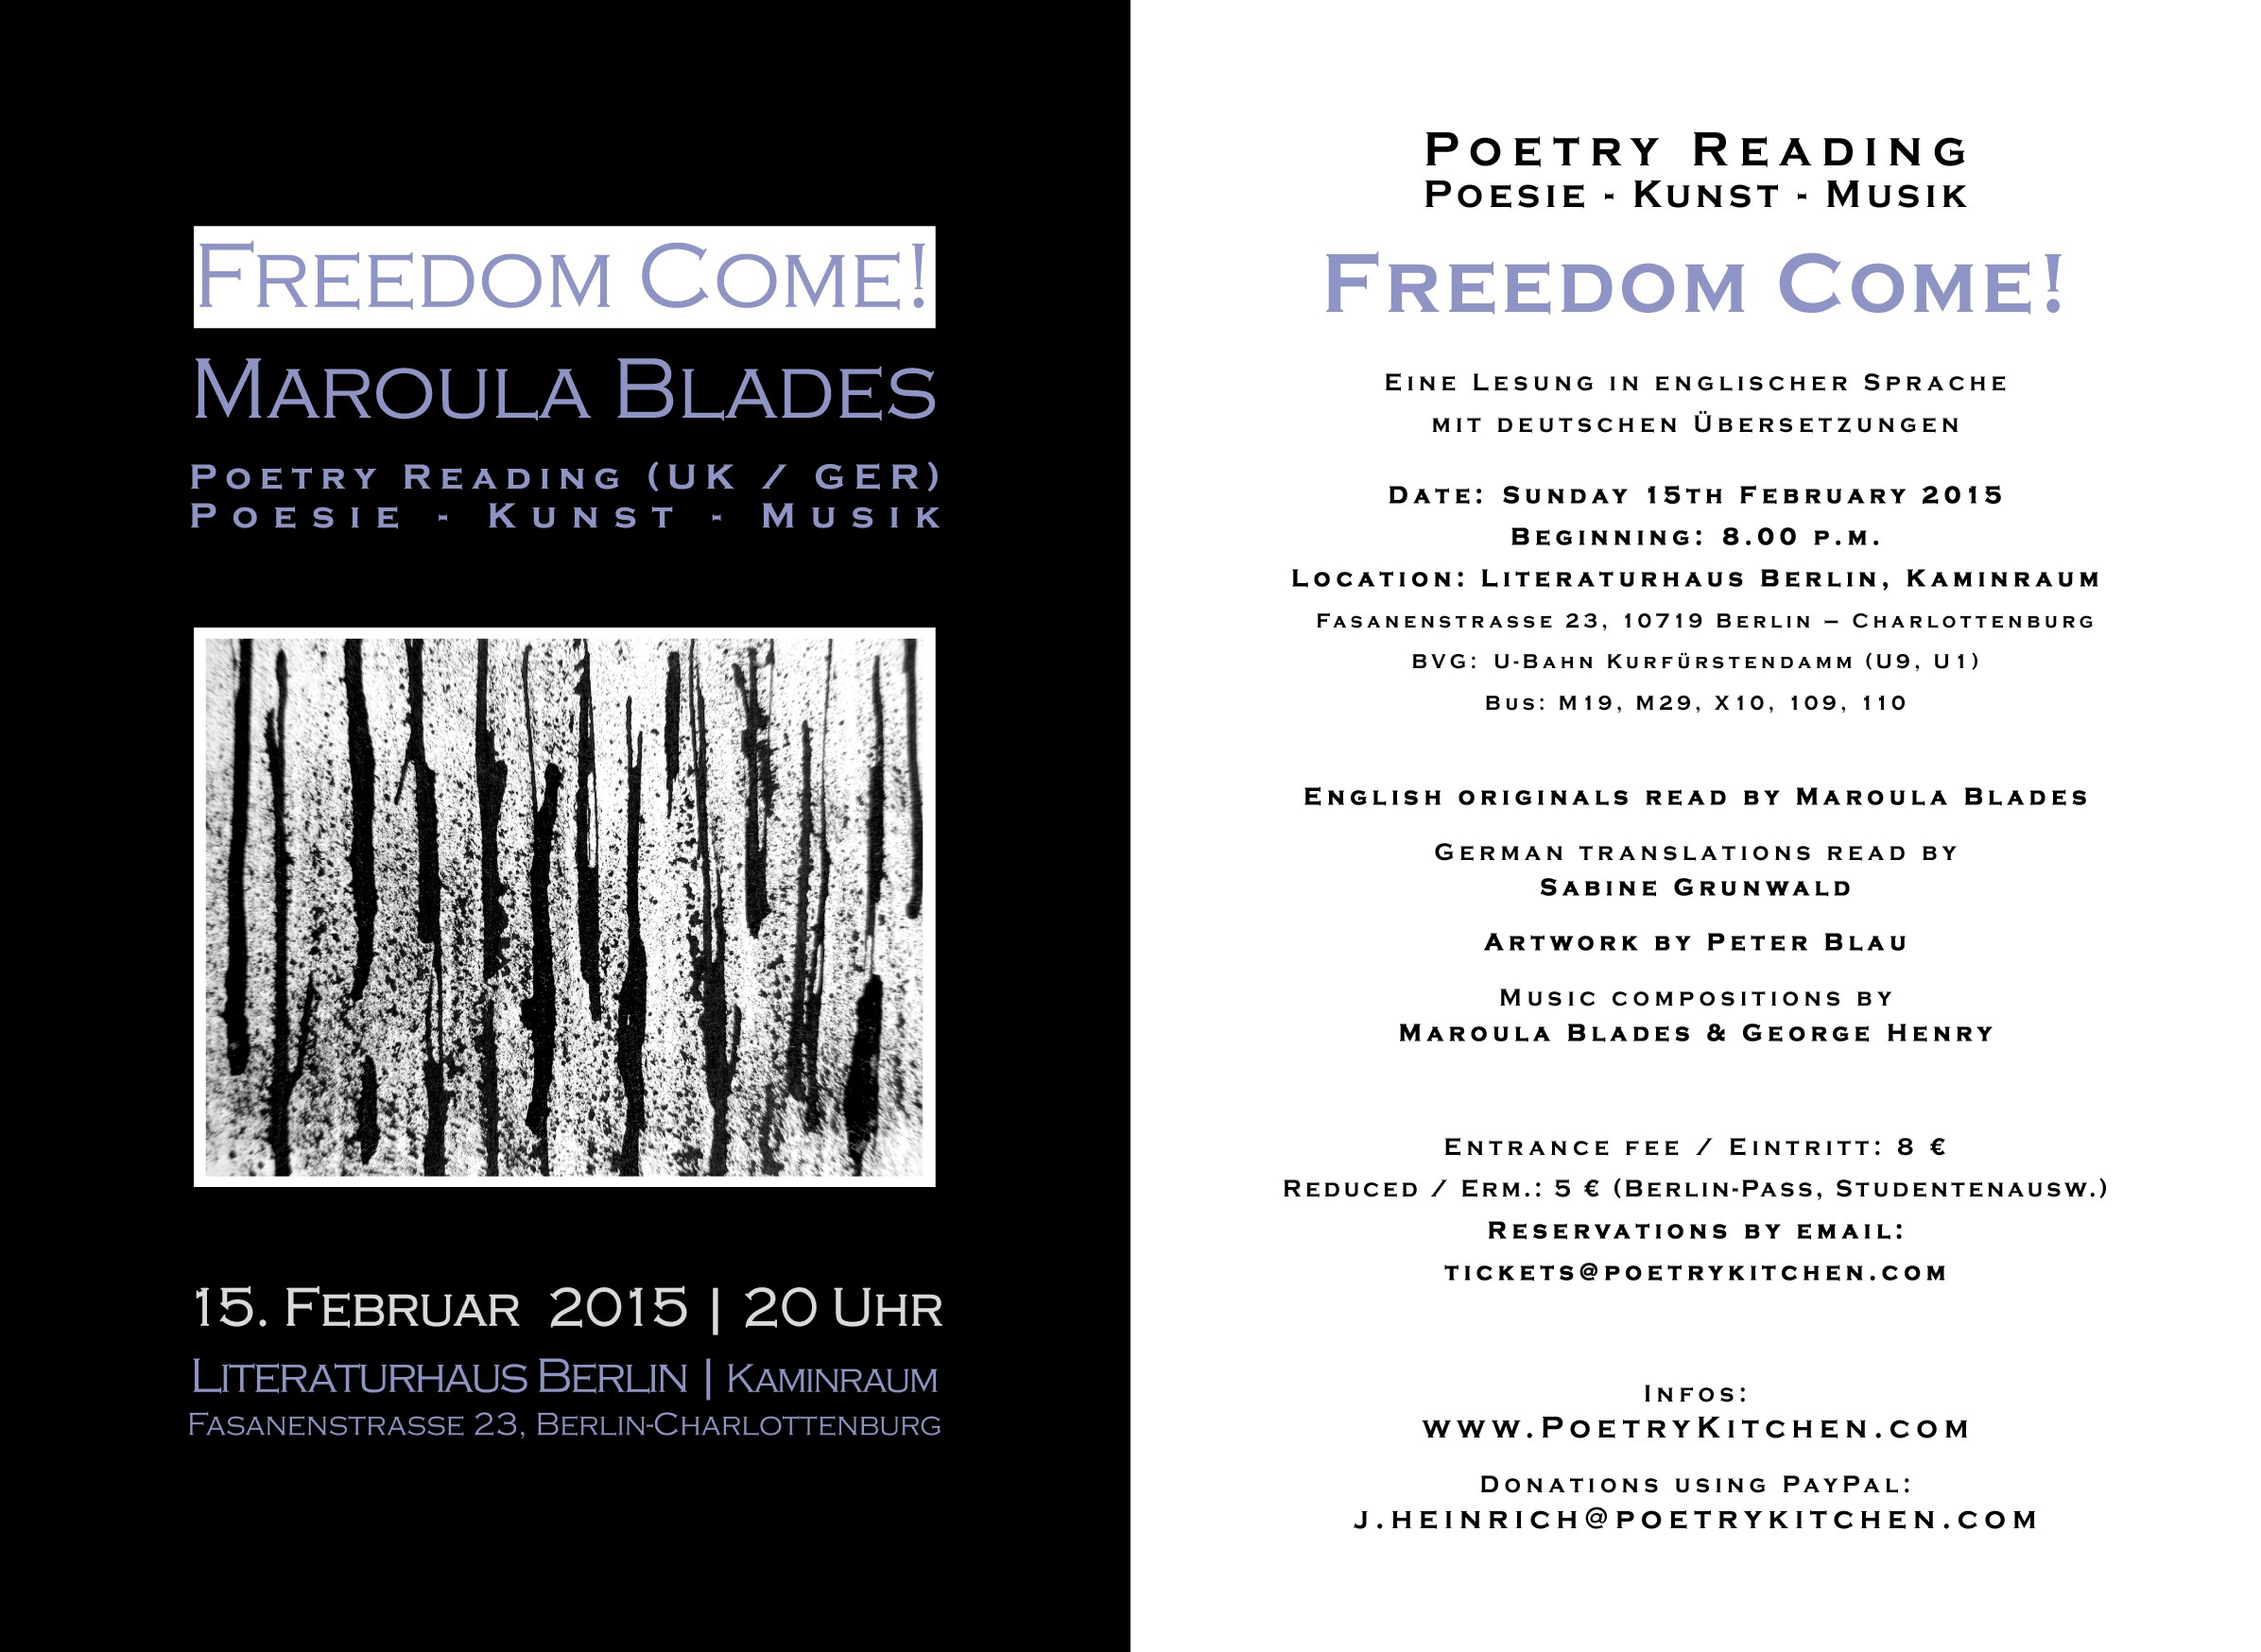 email flyer - Maroula Blades - FREEDOM COME